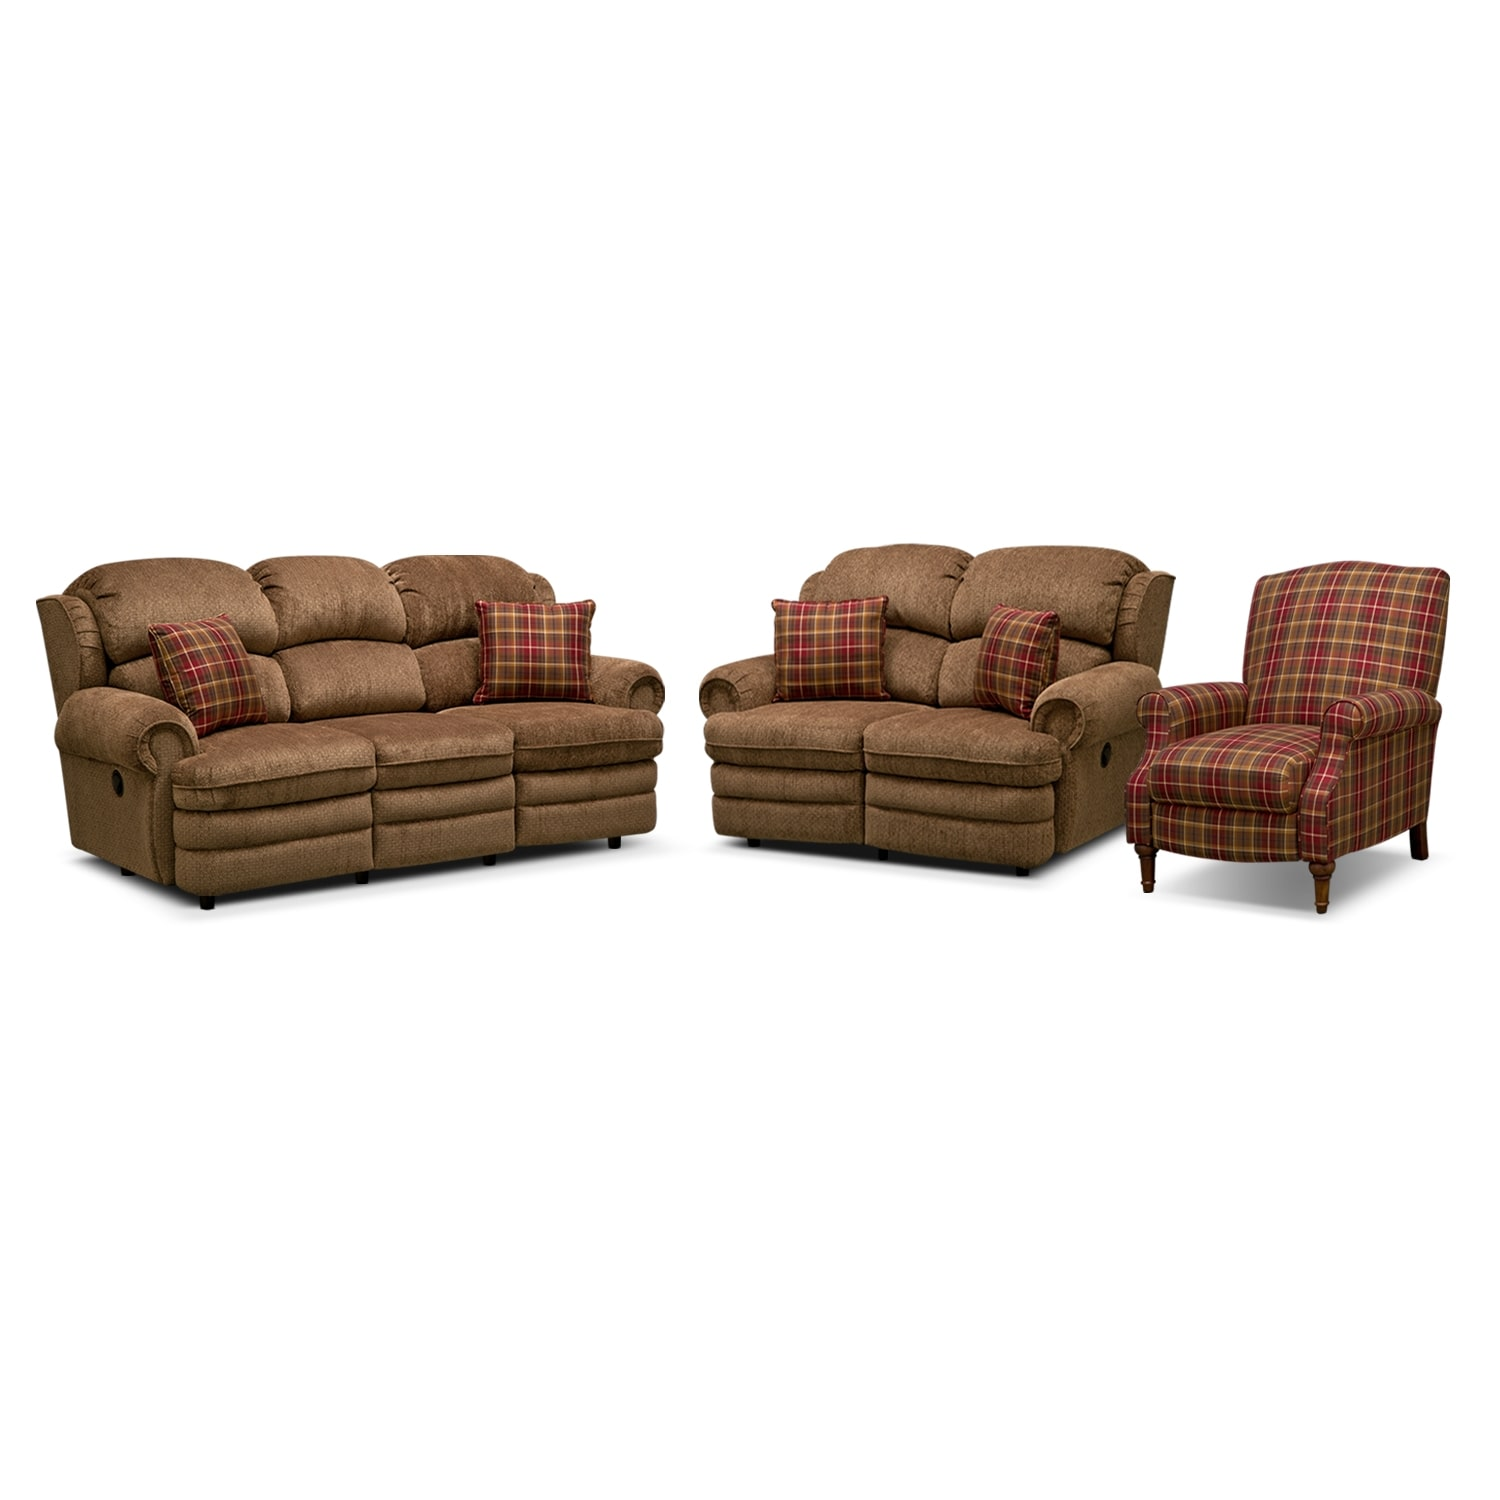 [Addison 3 Pc. Reclining Living Room w/Recliner]